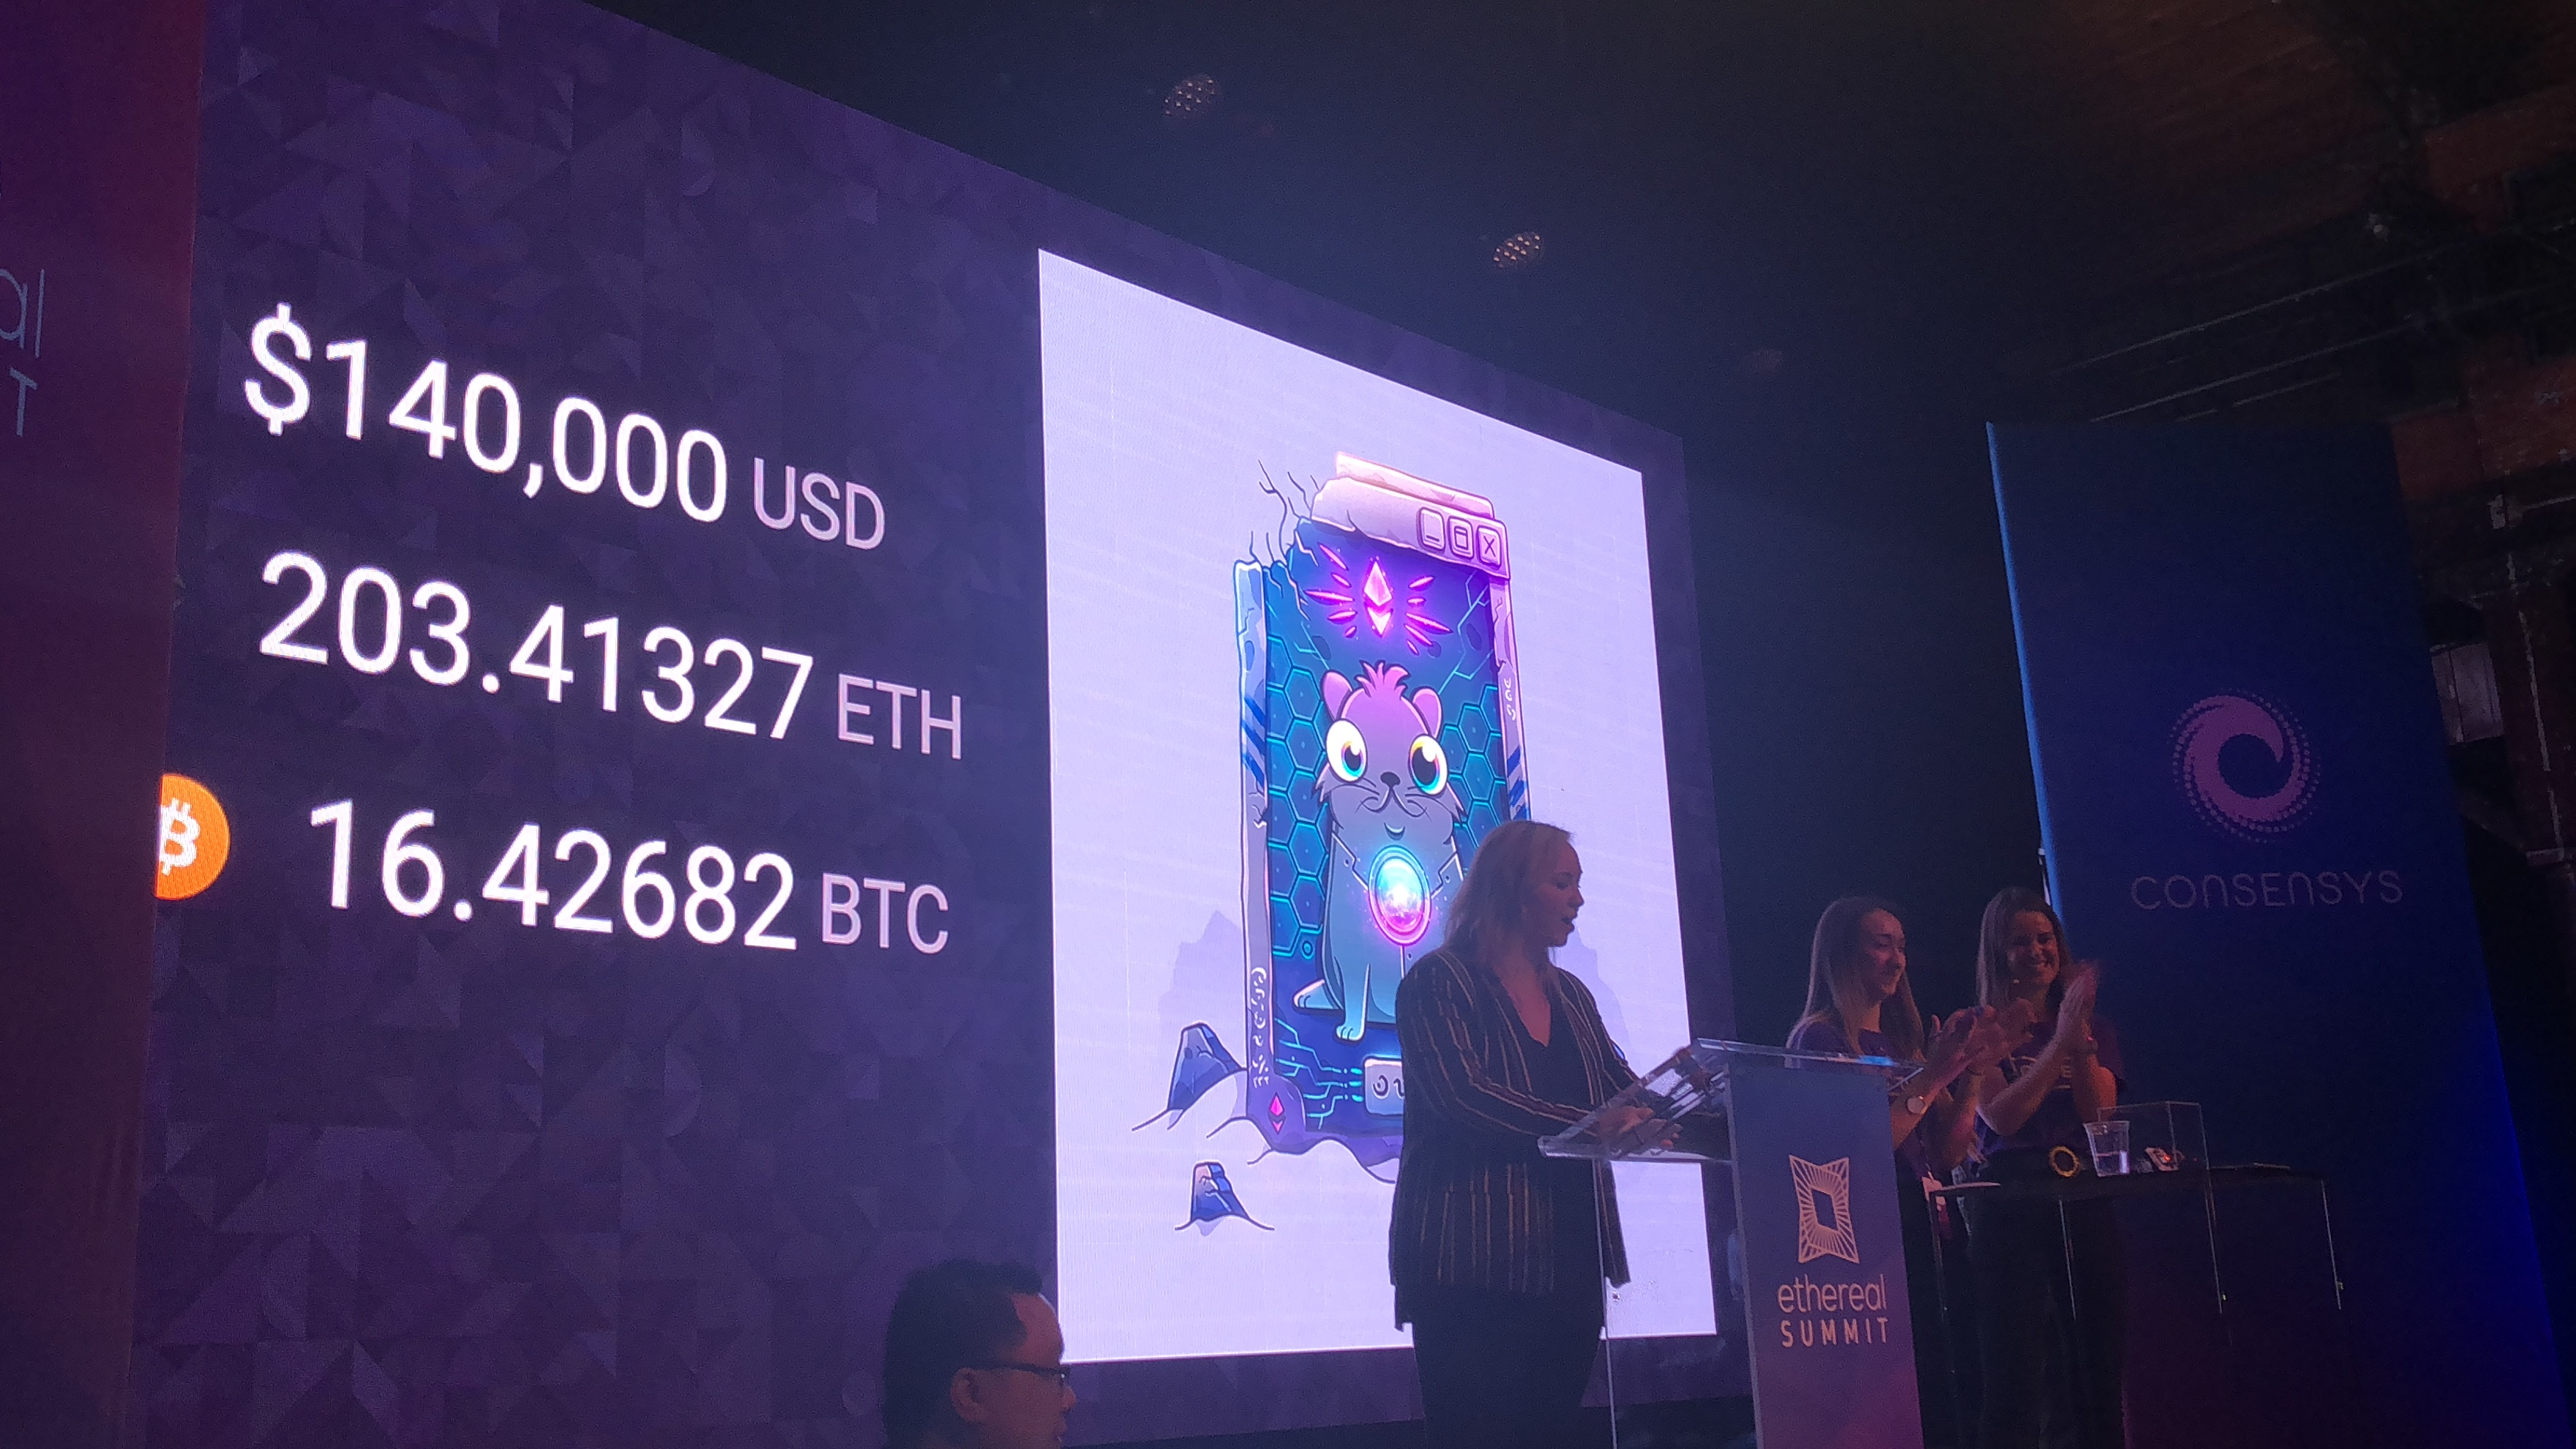 Crypto-wealthy become cryptoart collectors in smash May 12 digital art auction